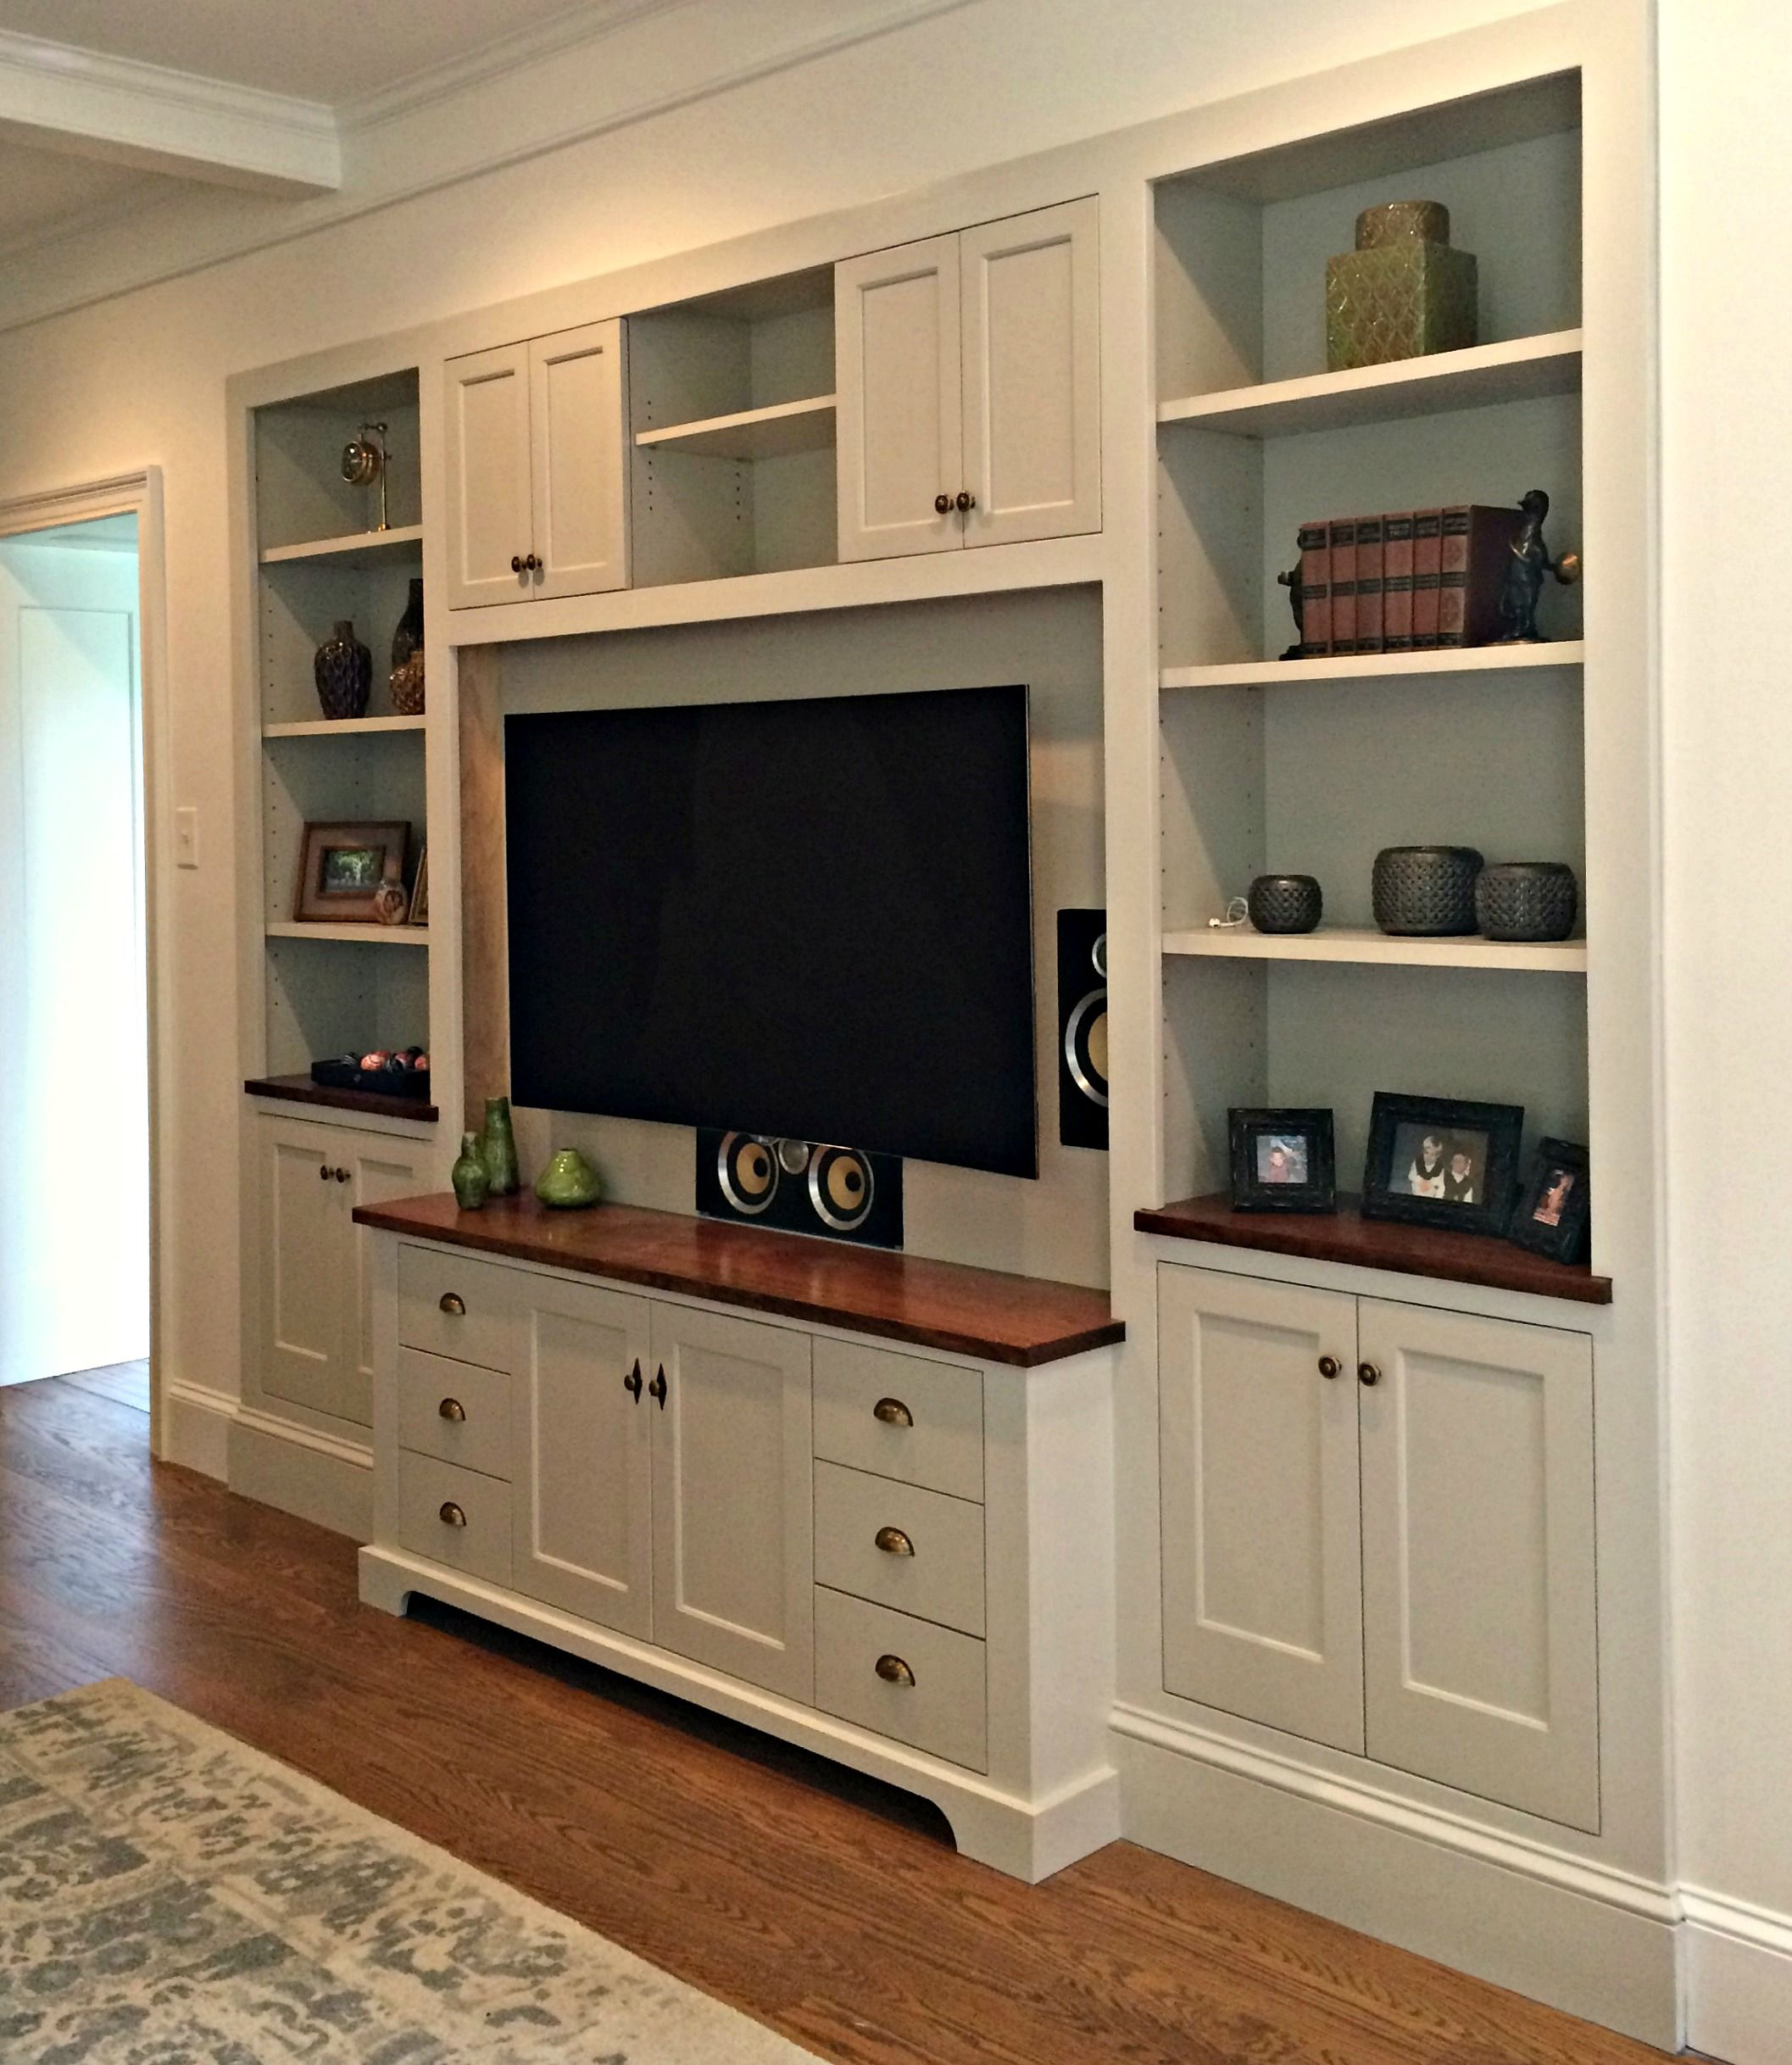 This custom entertainment center was recessed into the wall ...